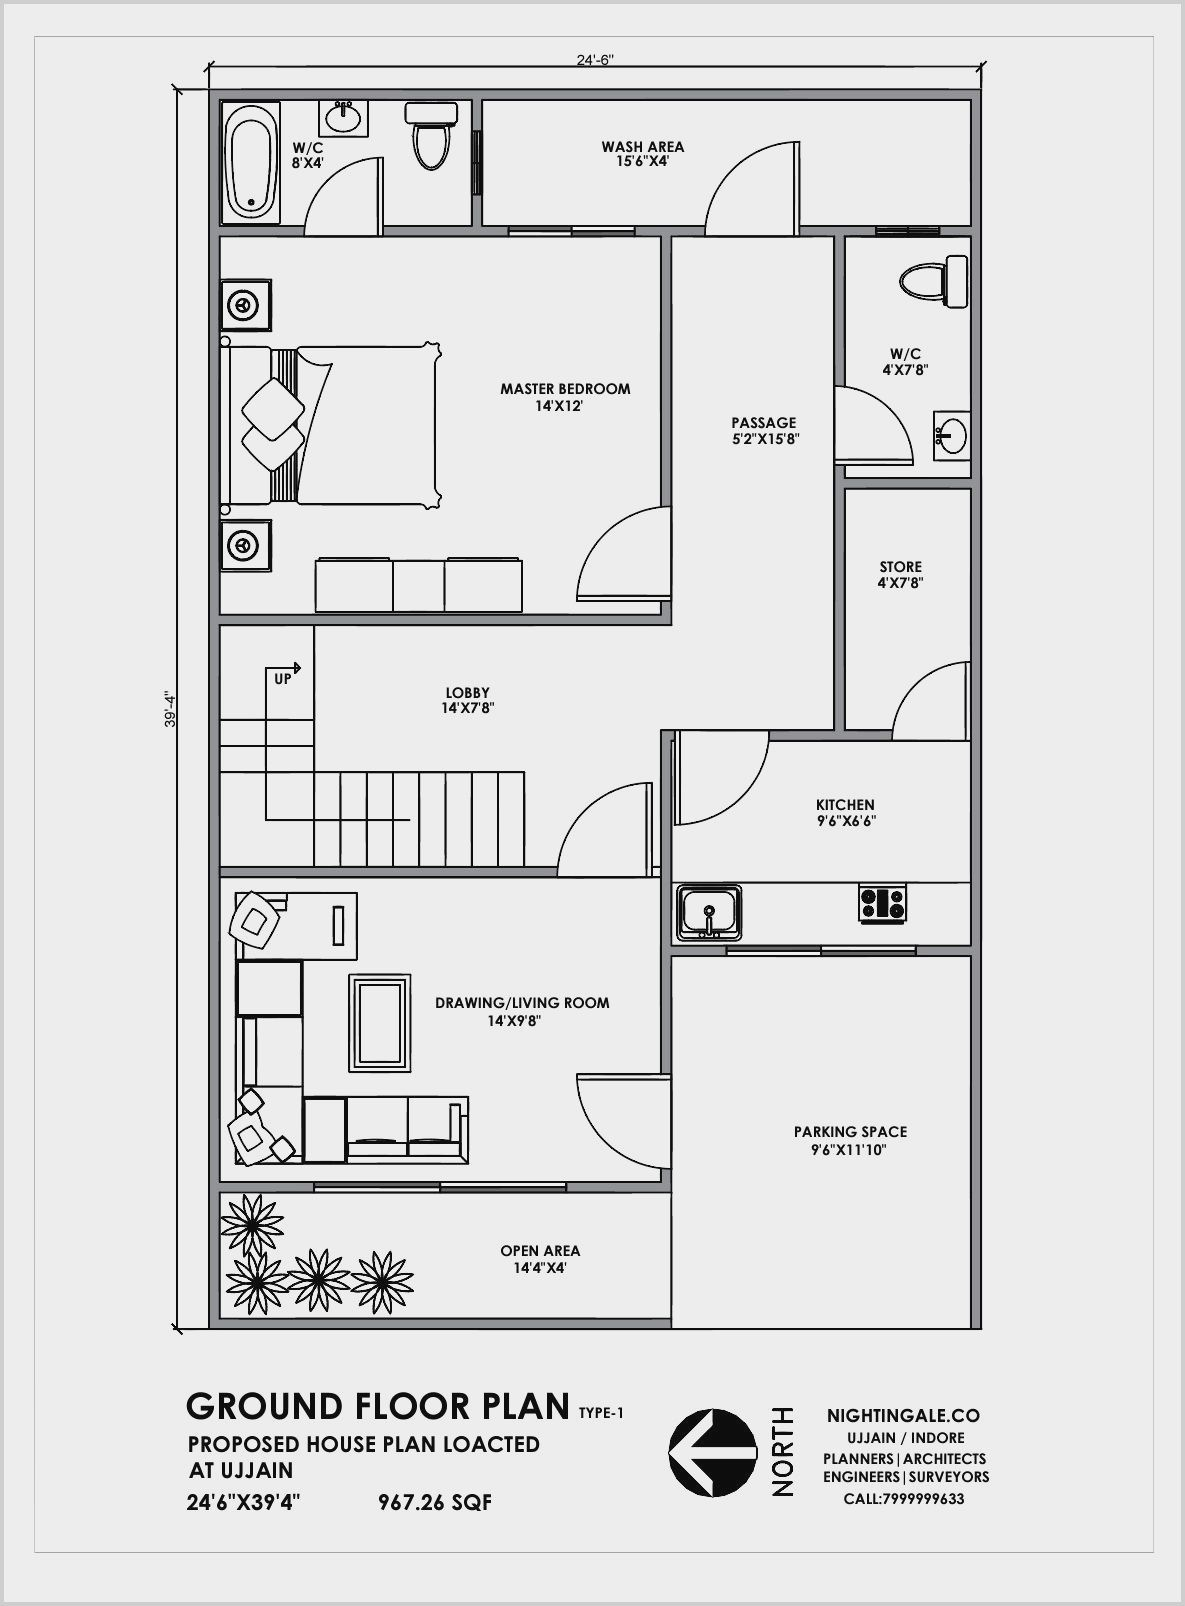 24 X 30 2 Bedroom House Plans Beautiful 3030 House Floor Plans Get 24 30 Cabin Ideas Cabin Design Bedroom House Plans Guest House Plans Cabin Plans With Loft